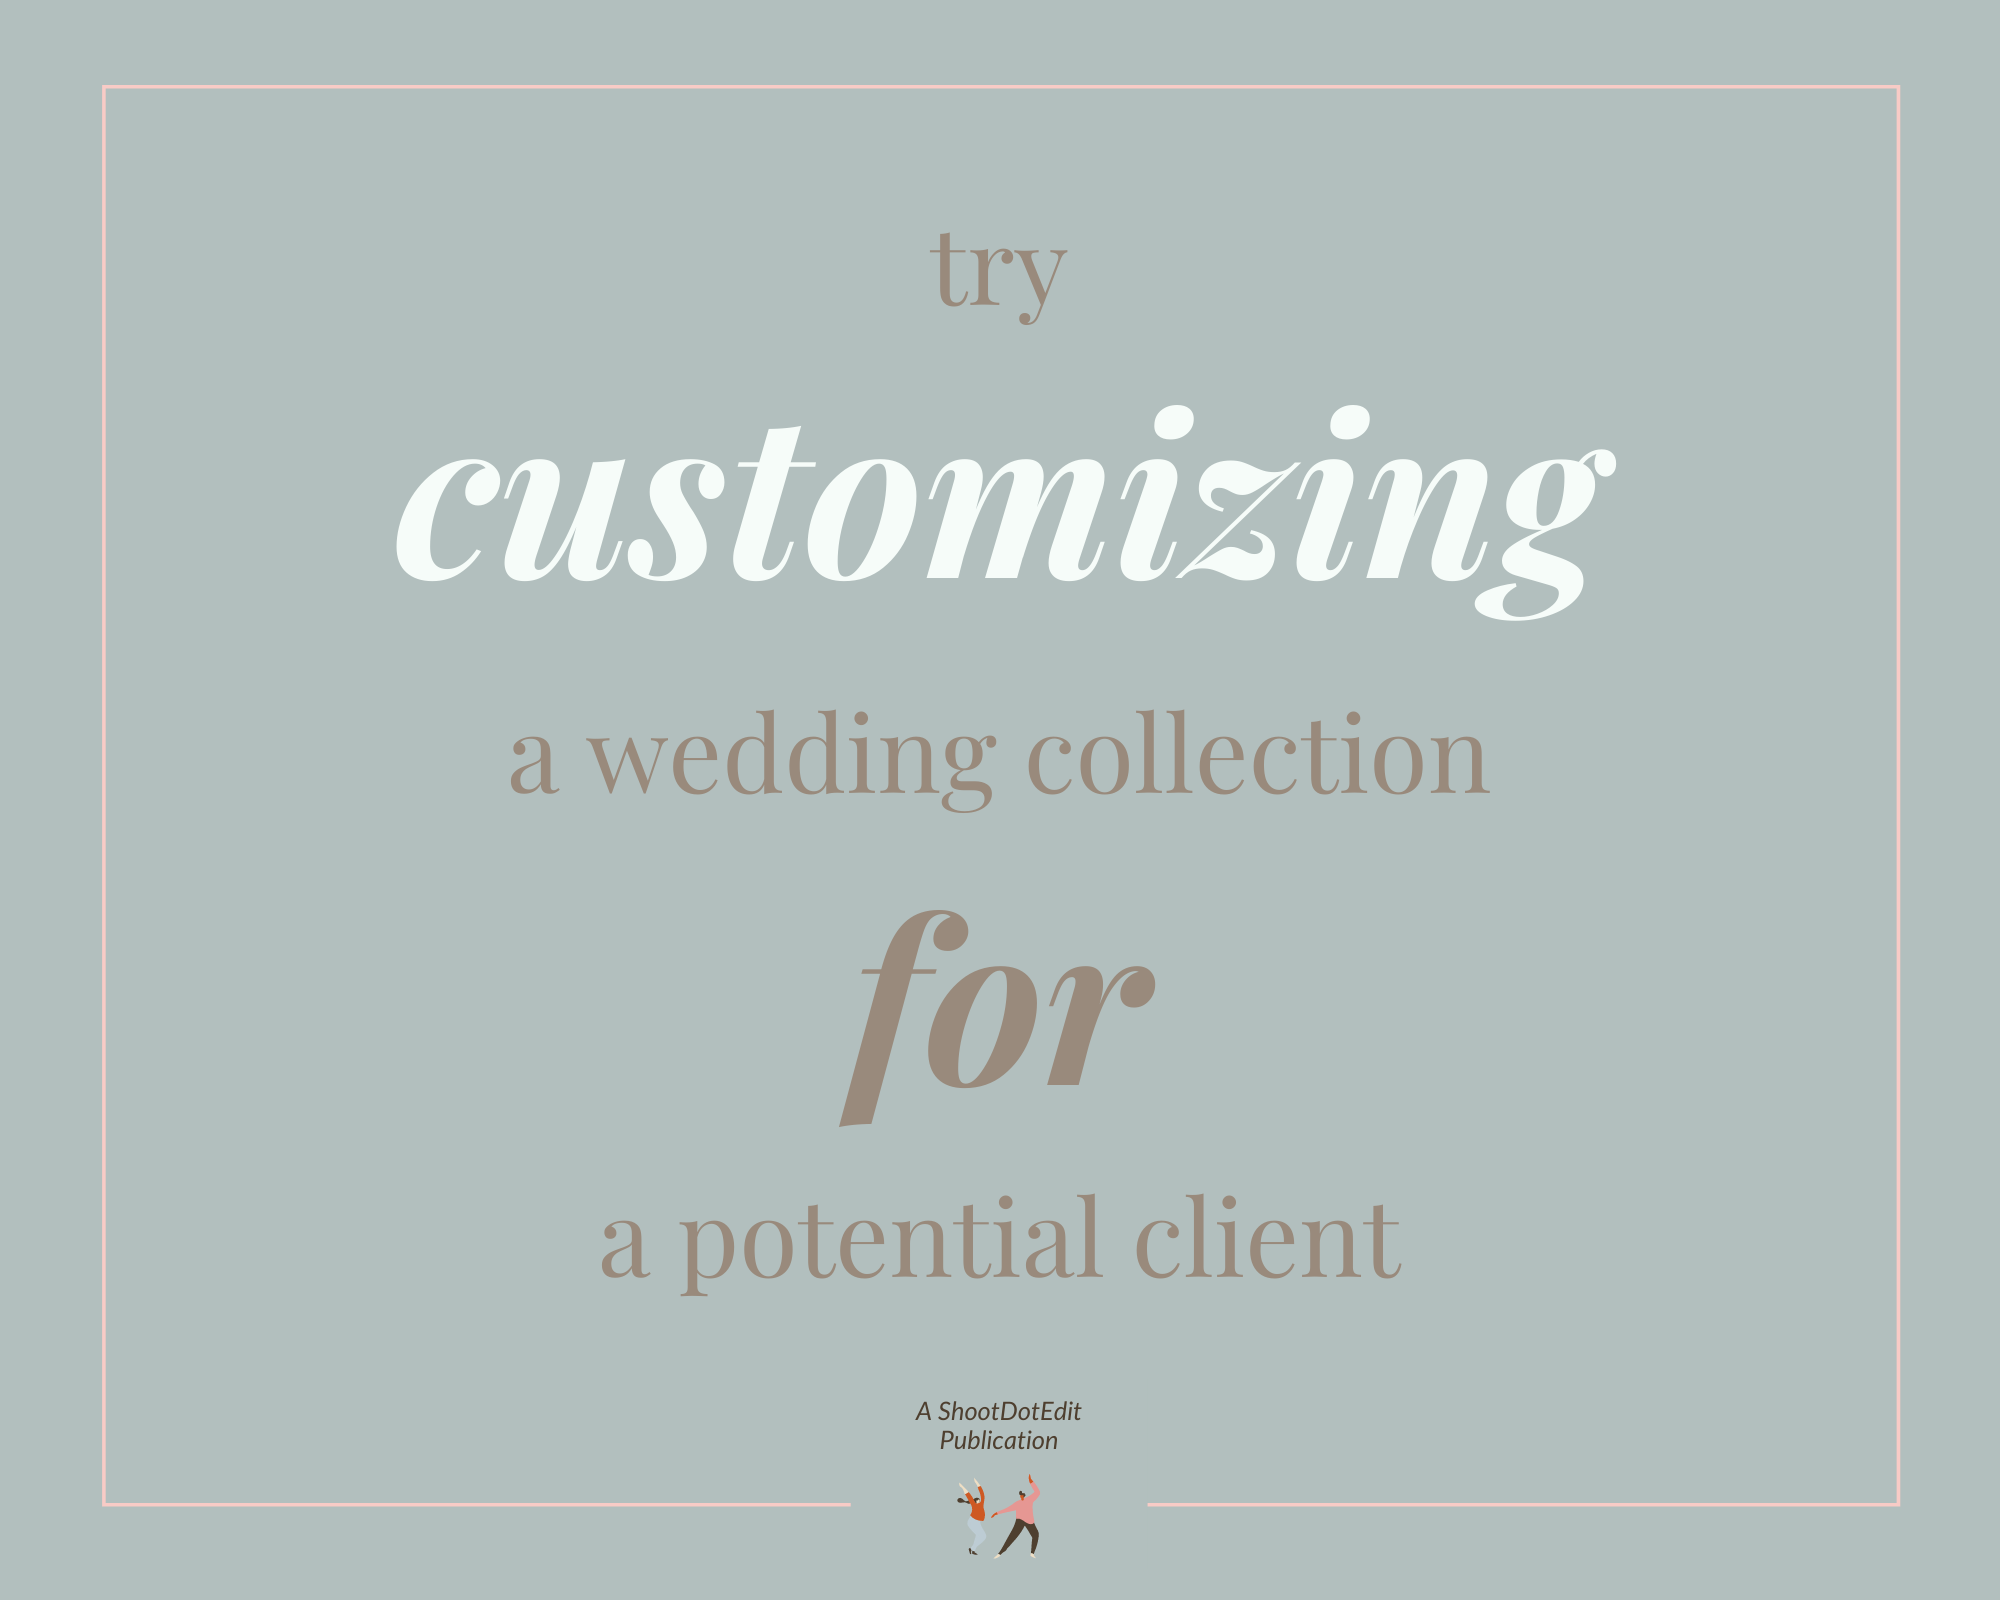 Infographic stating try customizing a wedding collection for a potential client